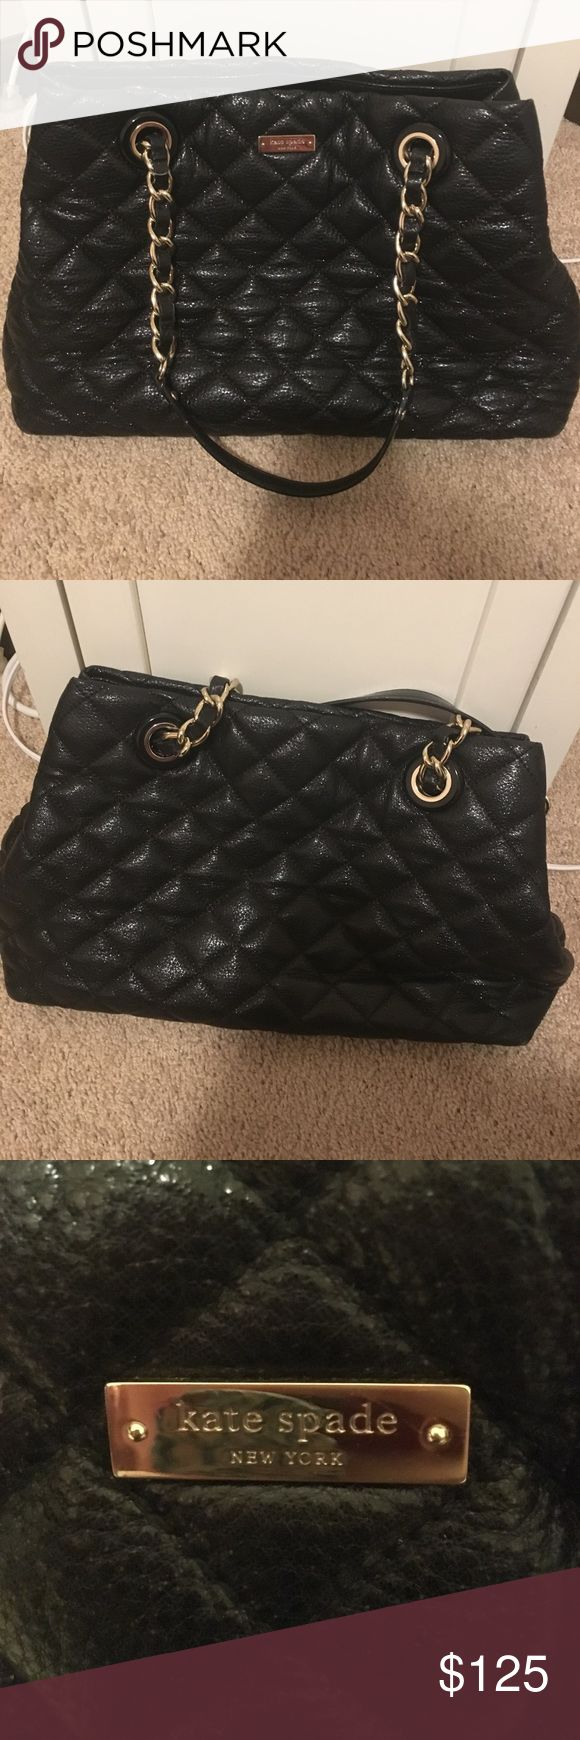 Kate Spade Gold Coast Maryanne Bag Black Kate Spade Gold Coast Maryanne bag. It is a beautiful, everyday use kind of bag that goes with any outfit. Quilted with silver accents. It has been used, and there is some staining to the inner lining on the bottom. The price will reflect that. kate spade Bags